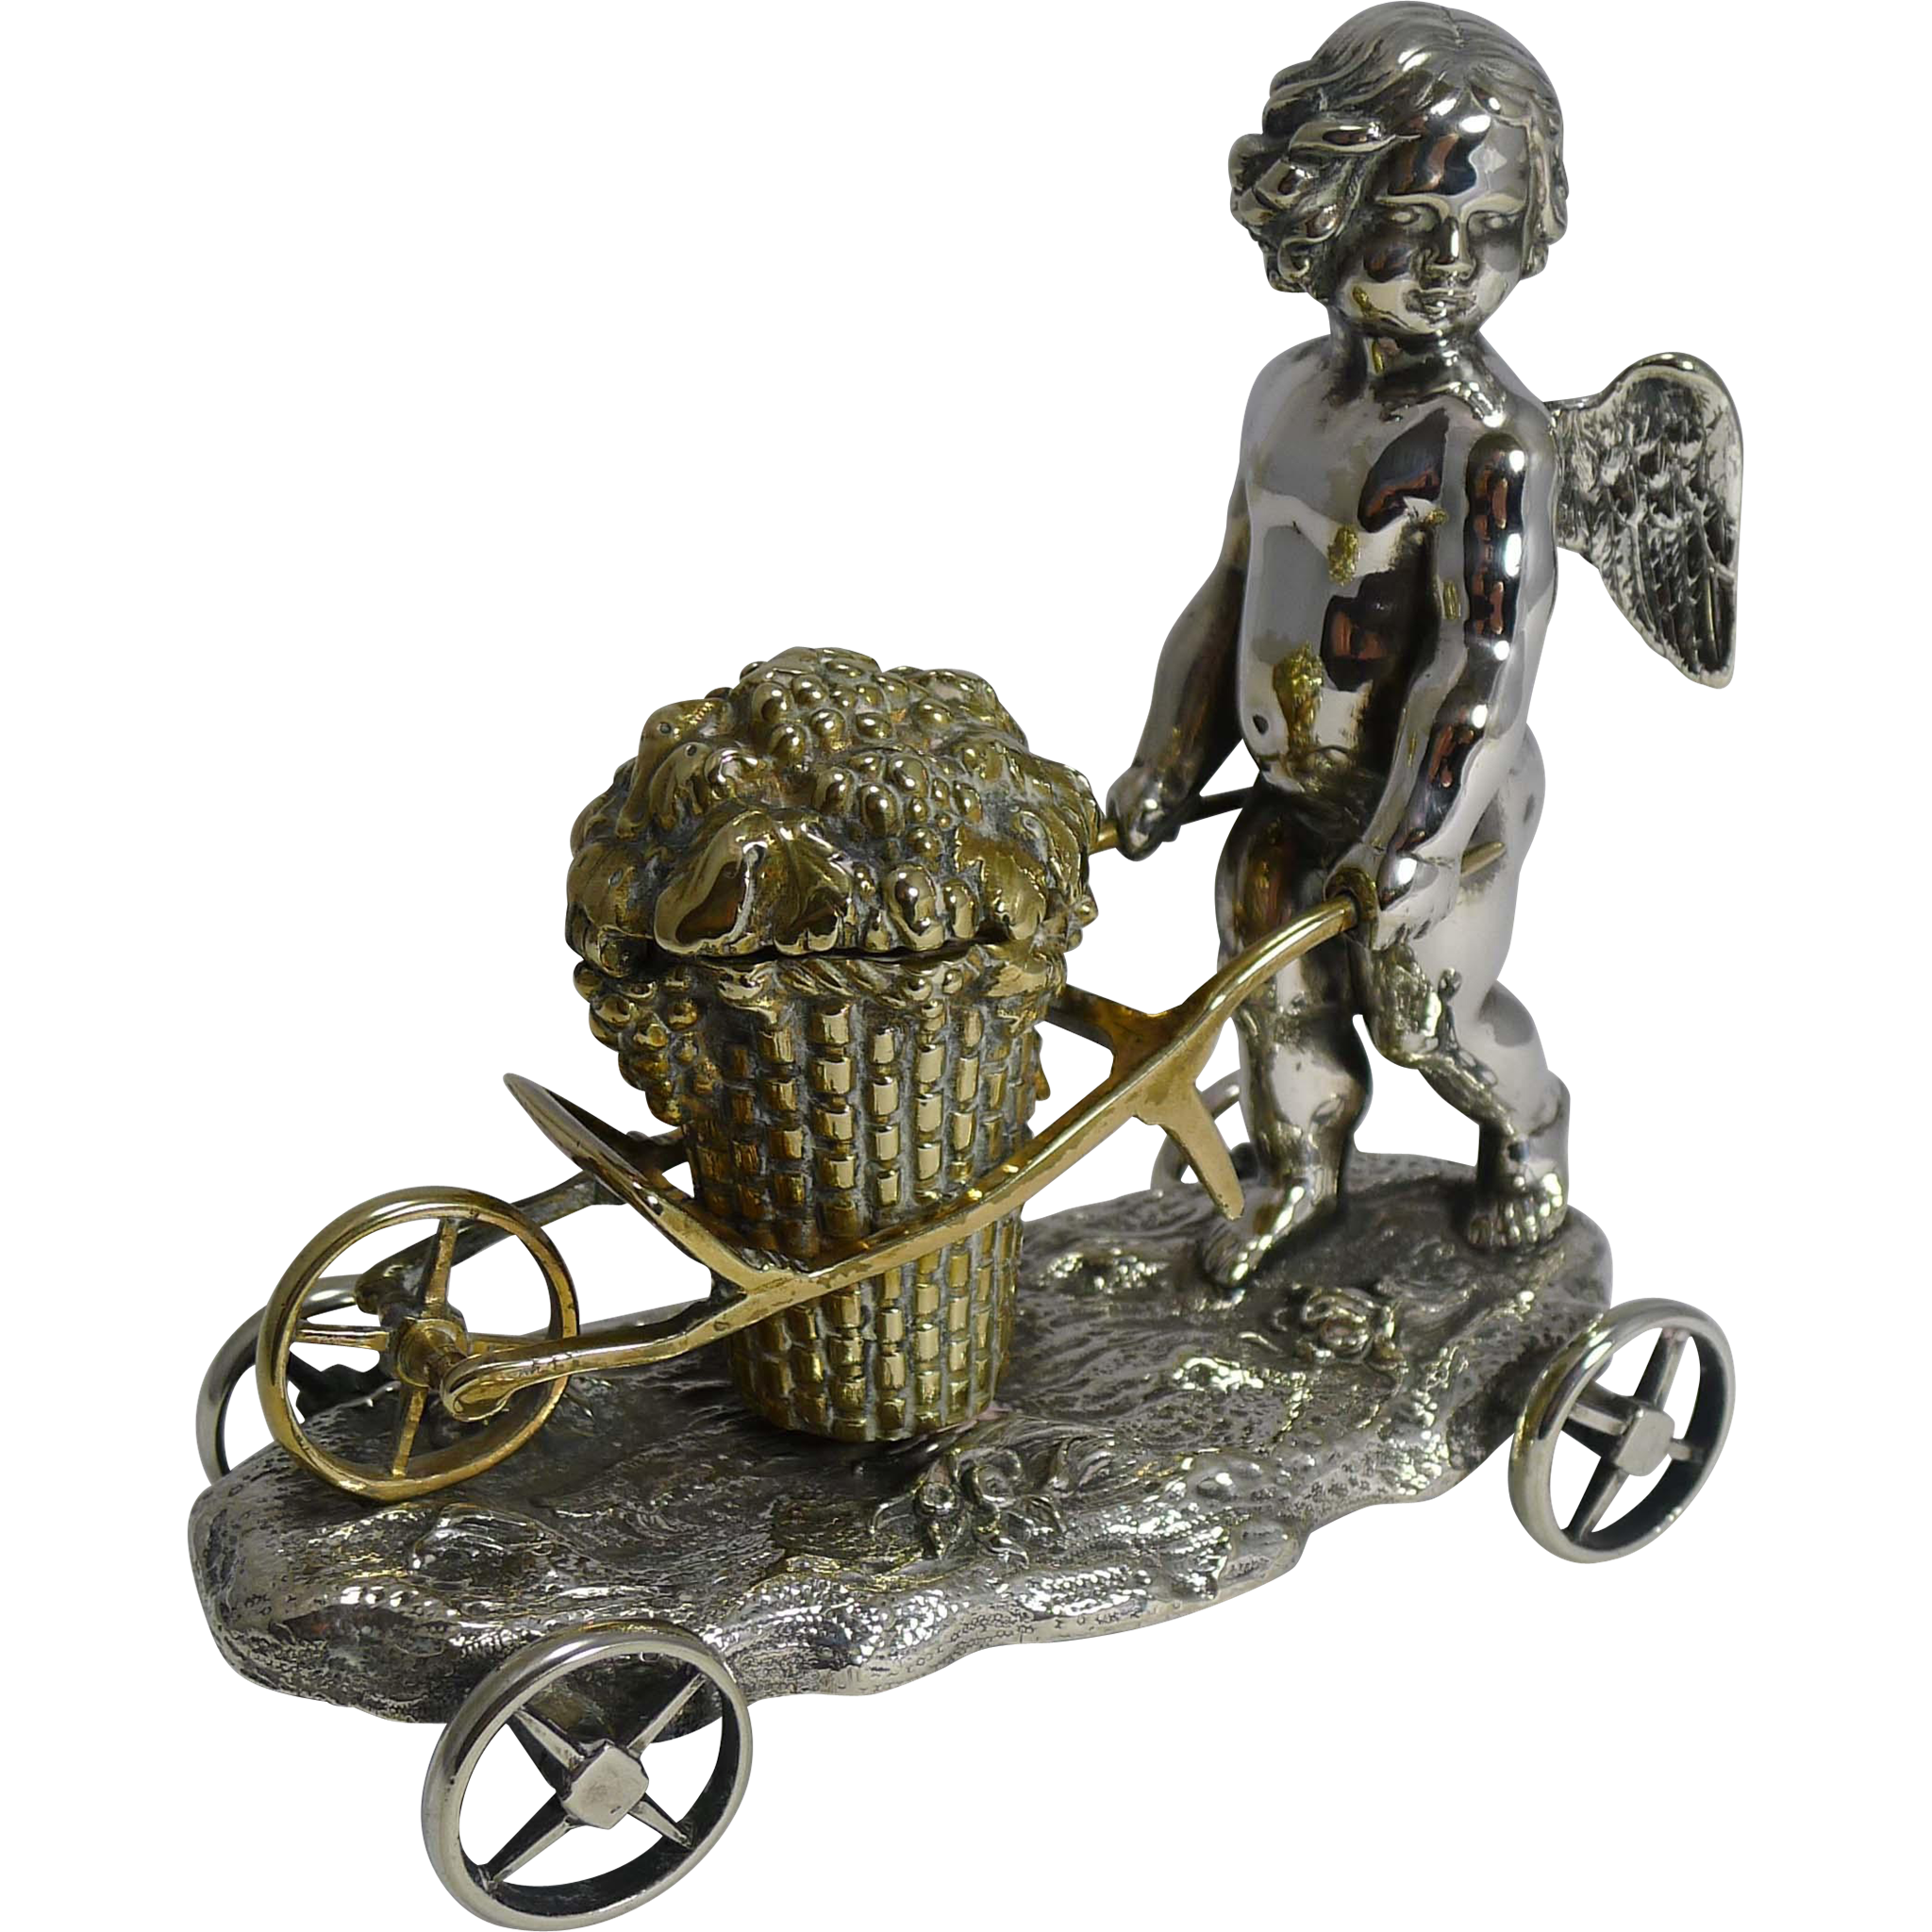 Antique English Silver Plated Cherub Inkwell by Elkington and Co. - 1848